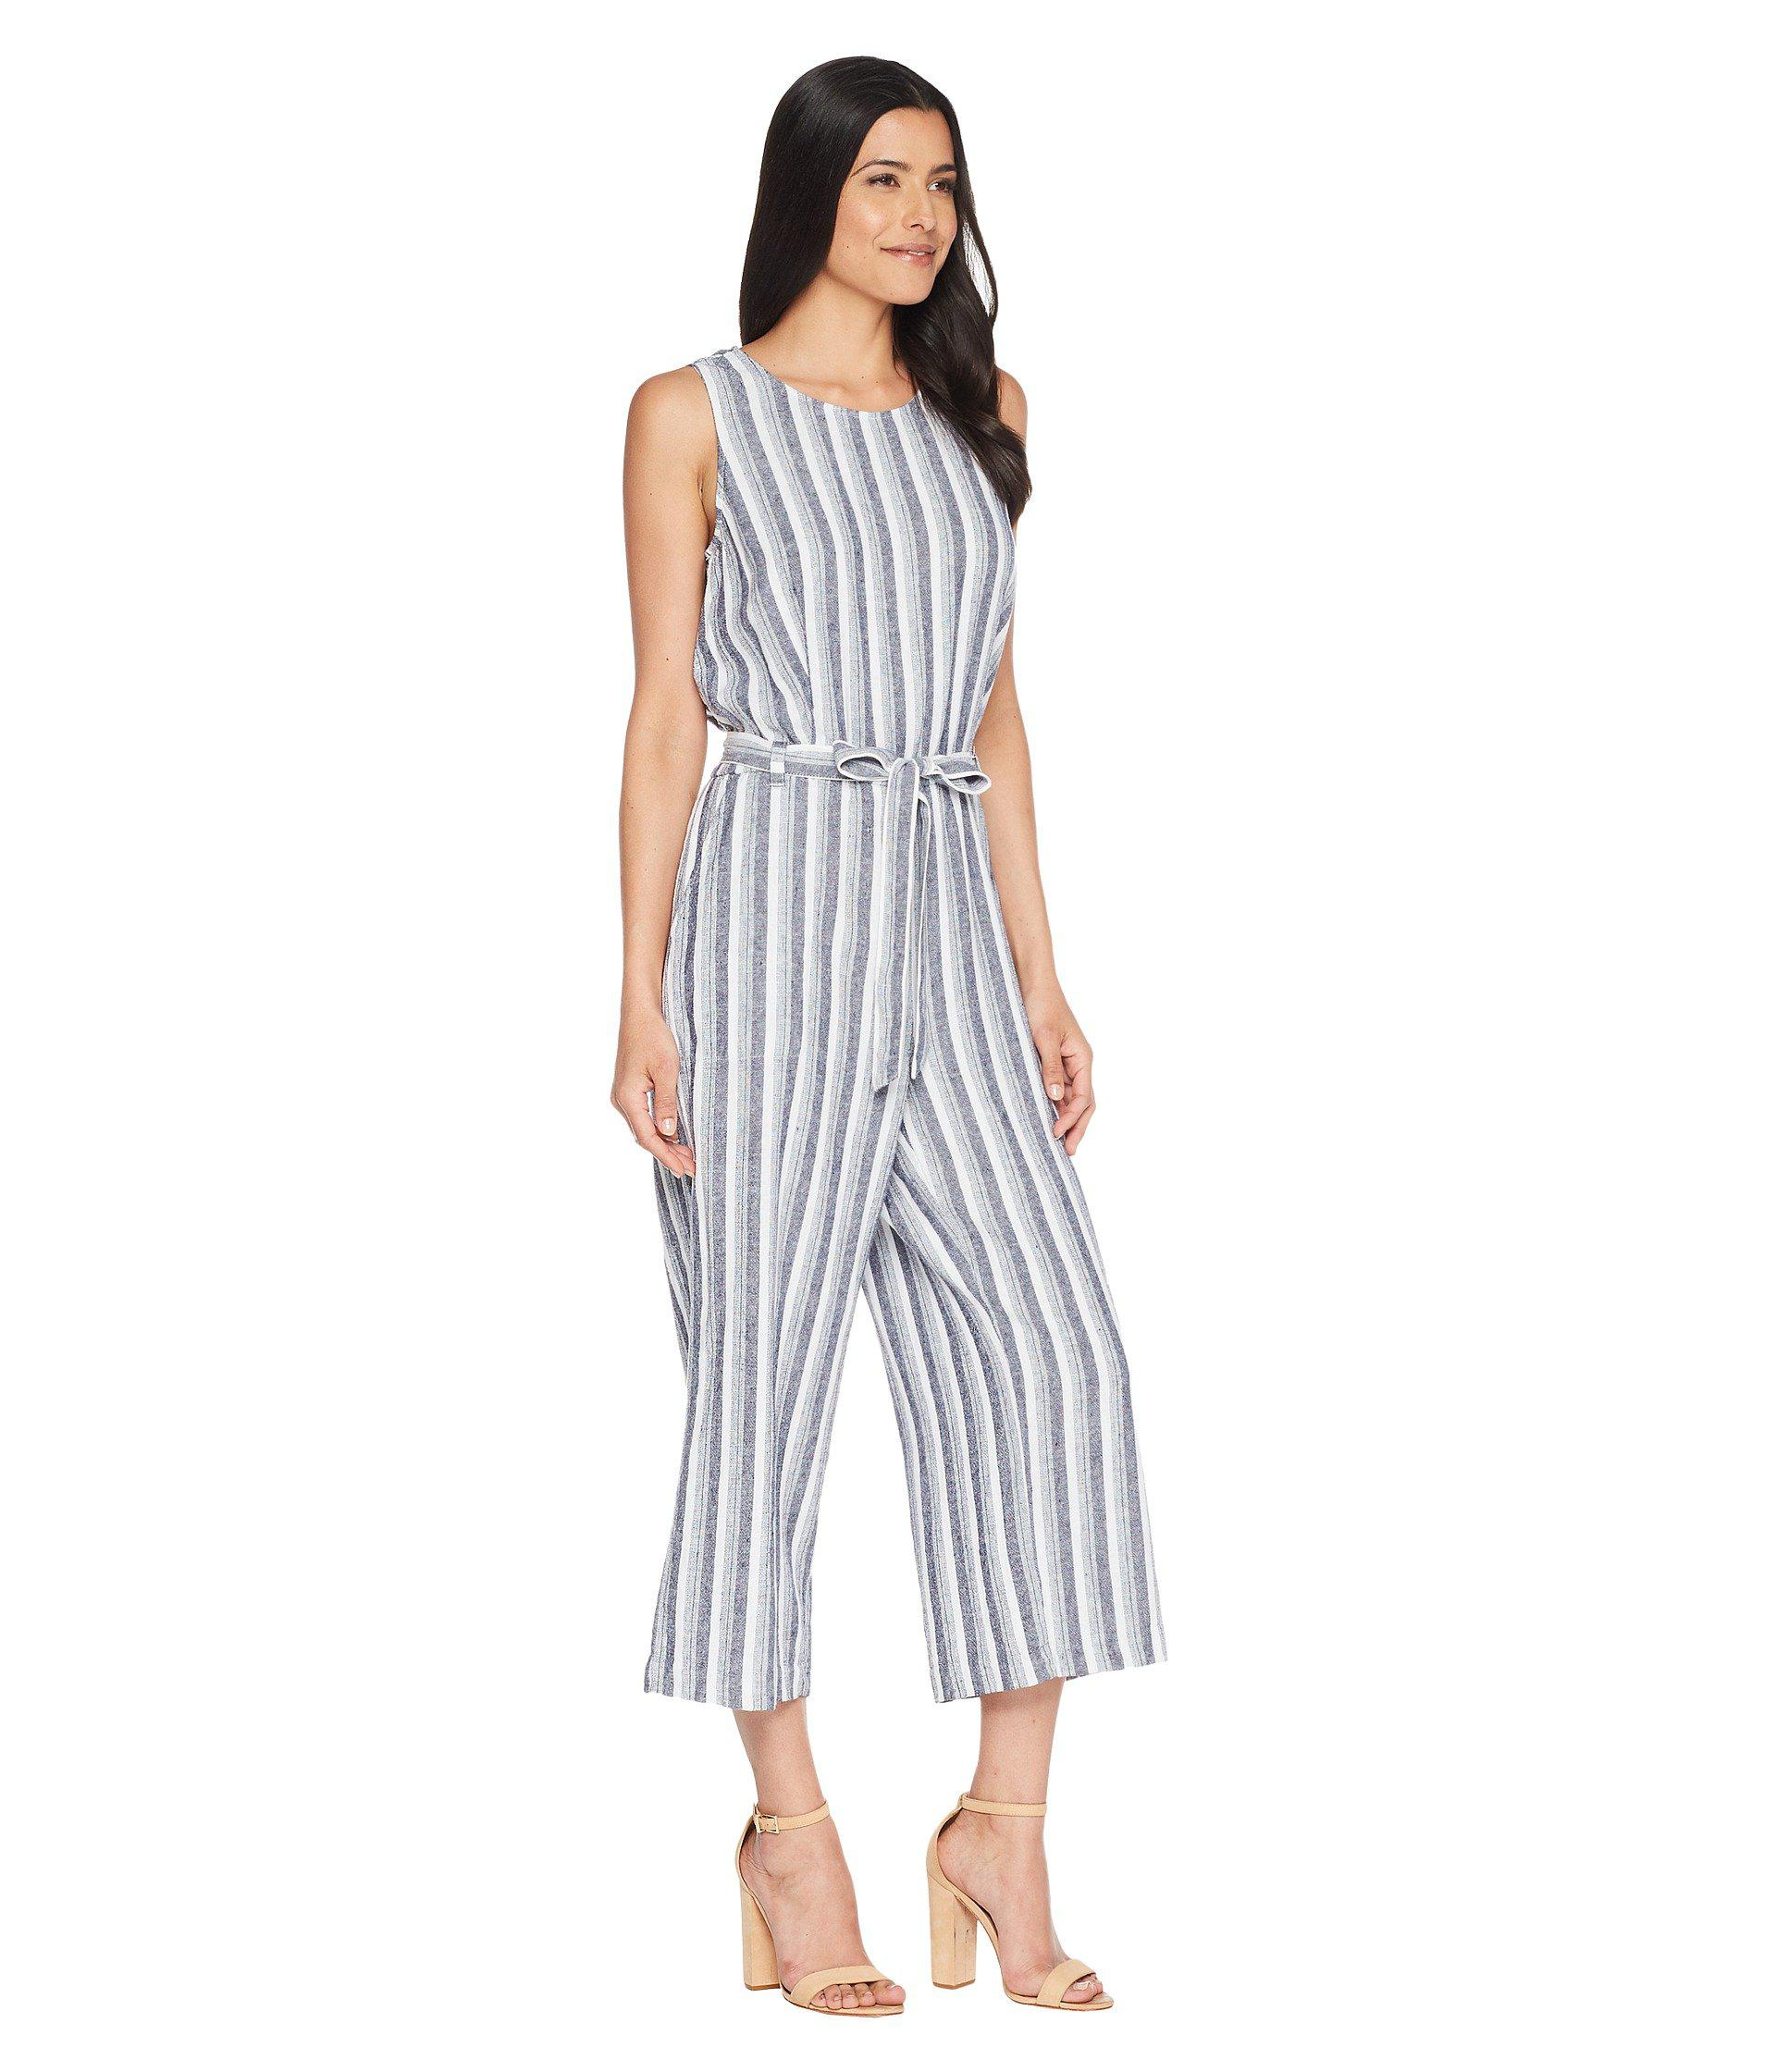 9374786114f3 Lyst - Two By Vince Camuto Sleeveless Shore Linen Stripe Belted ...